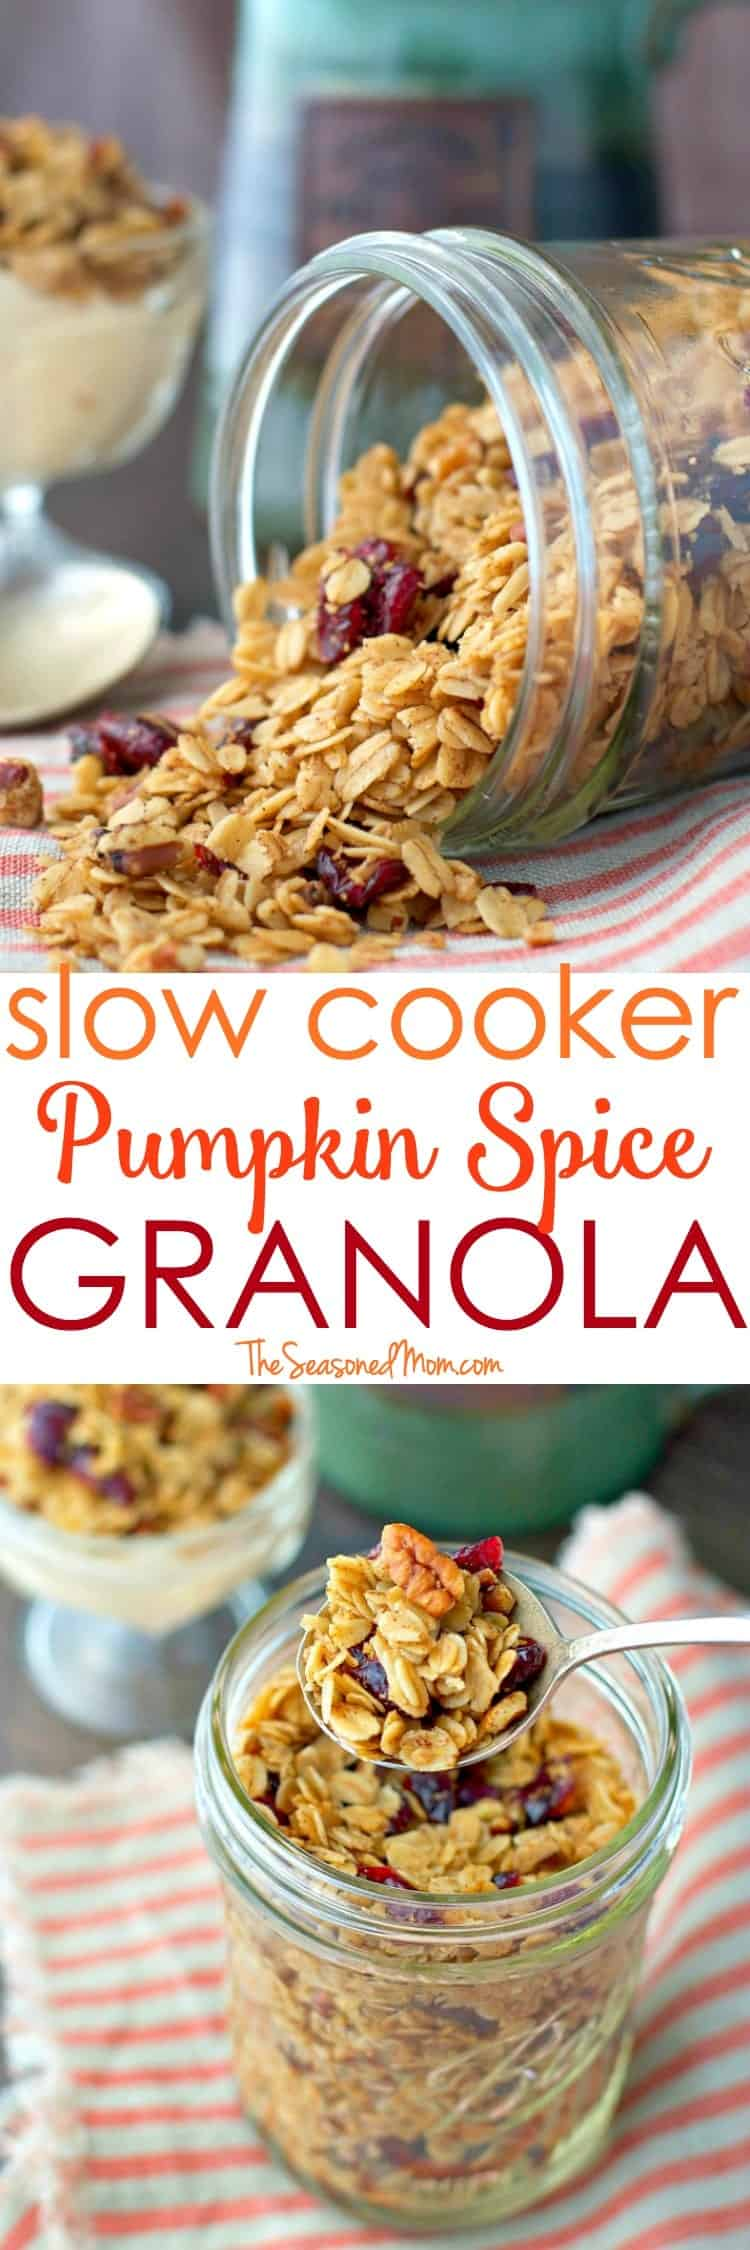 This Slow Cooker Pumpkin Spice Granola Recipe is an easy make-ahead ...